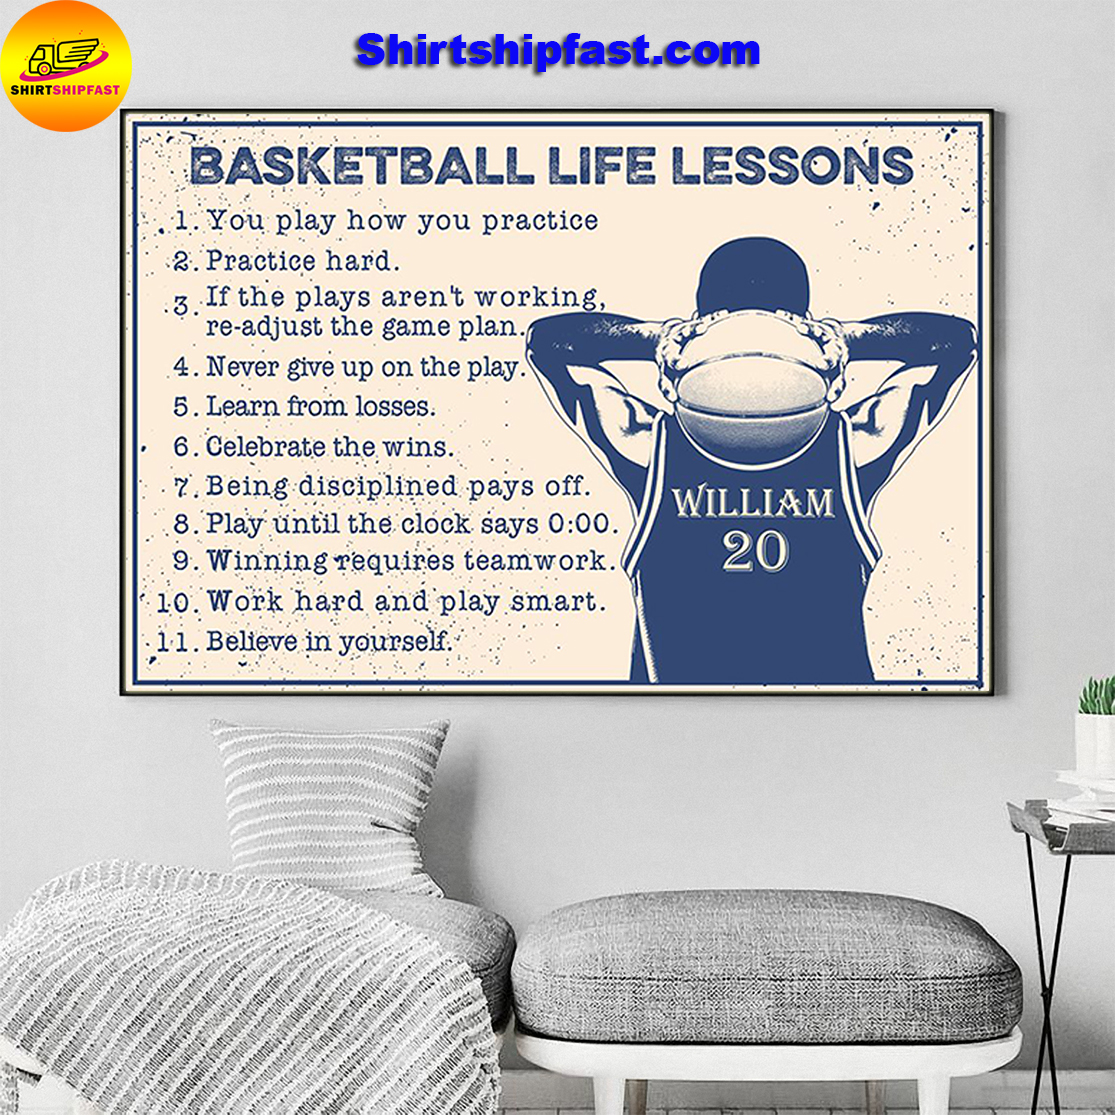 Basketball life lessons personalized customm name poster - Picture 3